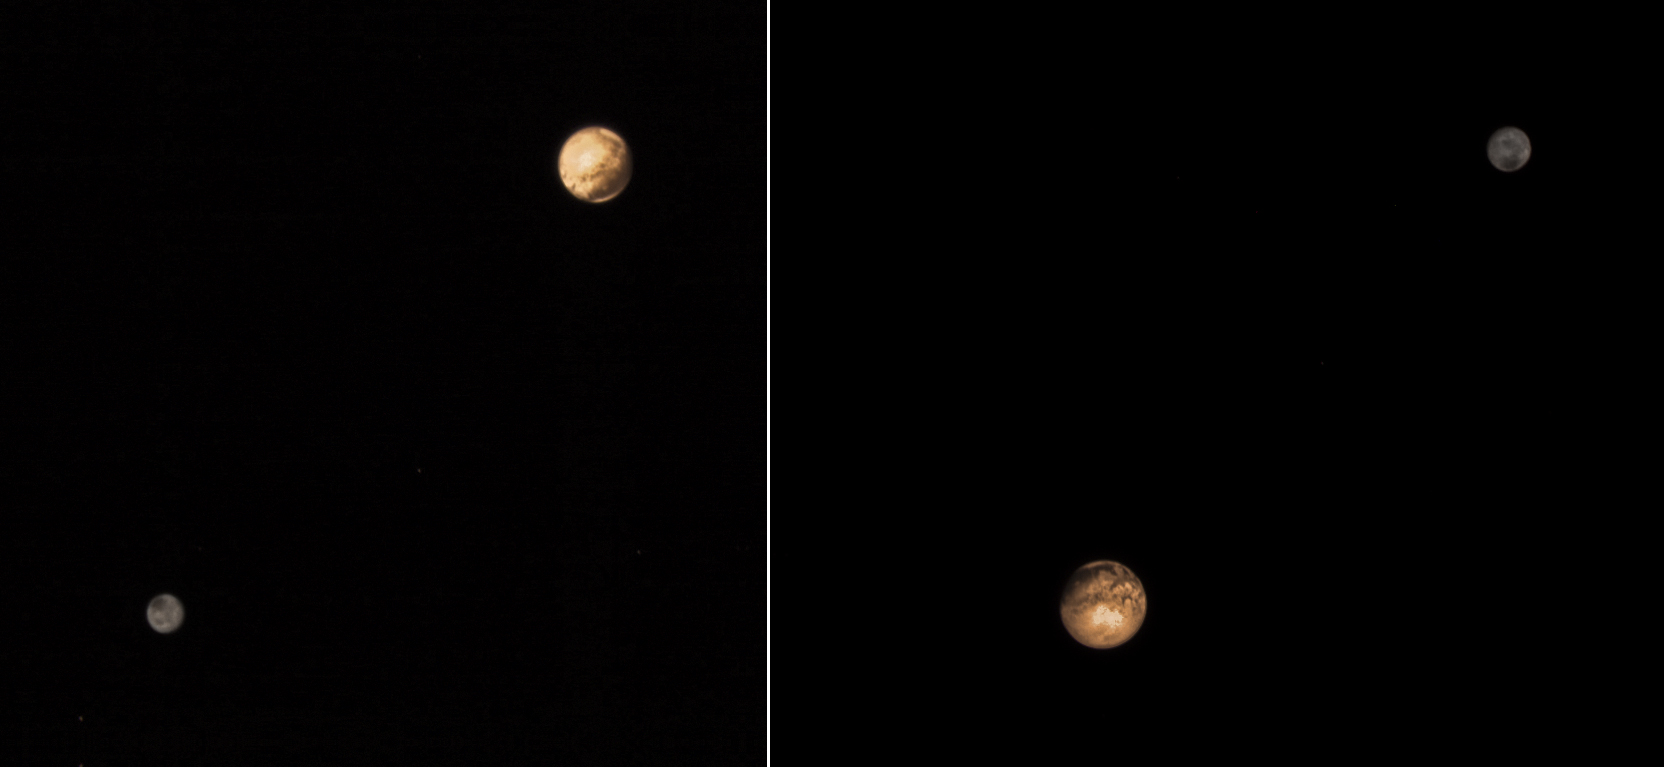 Pluto and Charon LORRI 2015-07-09 (virtual color)